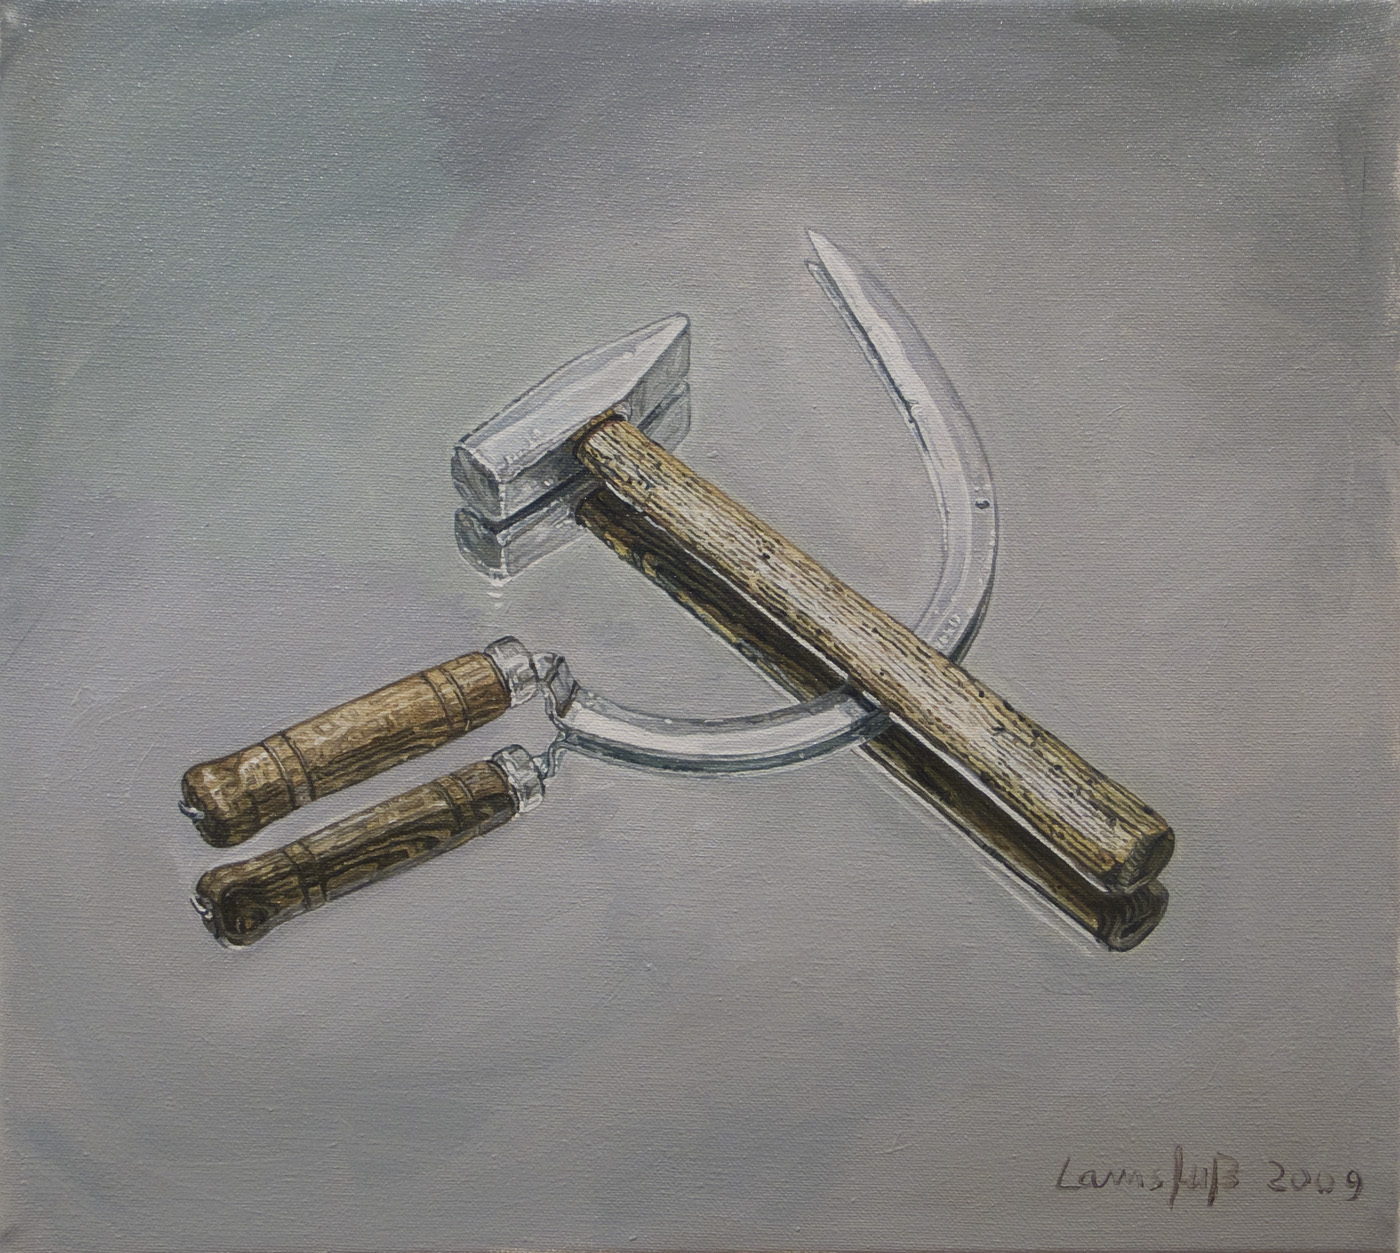 Ulrich Lamsfuss  J osephine Meckseper, Hammer and Sickle (Image from the Josephine Meckseper catalague N°2, Artforum Oct. 2006) , 2009 oil on canvas 14.17 x 15.75 inches 36 x 40 cm